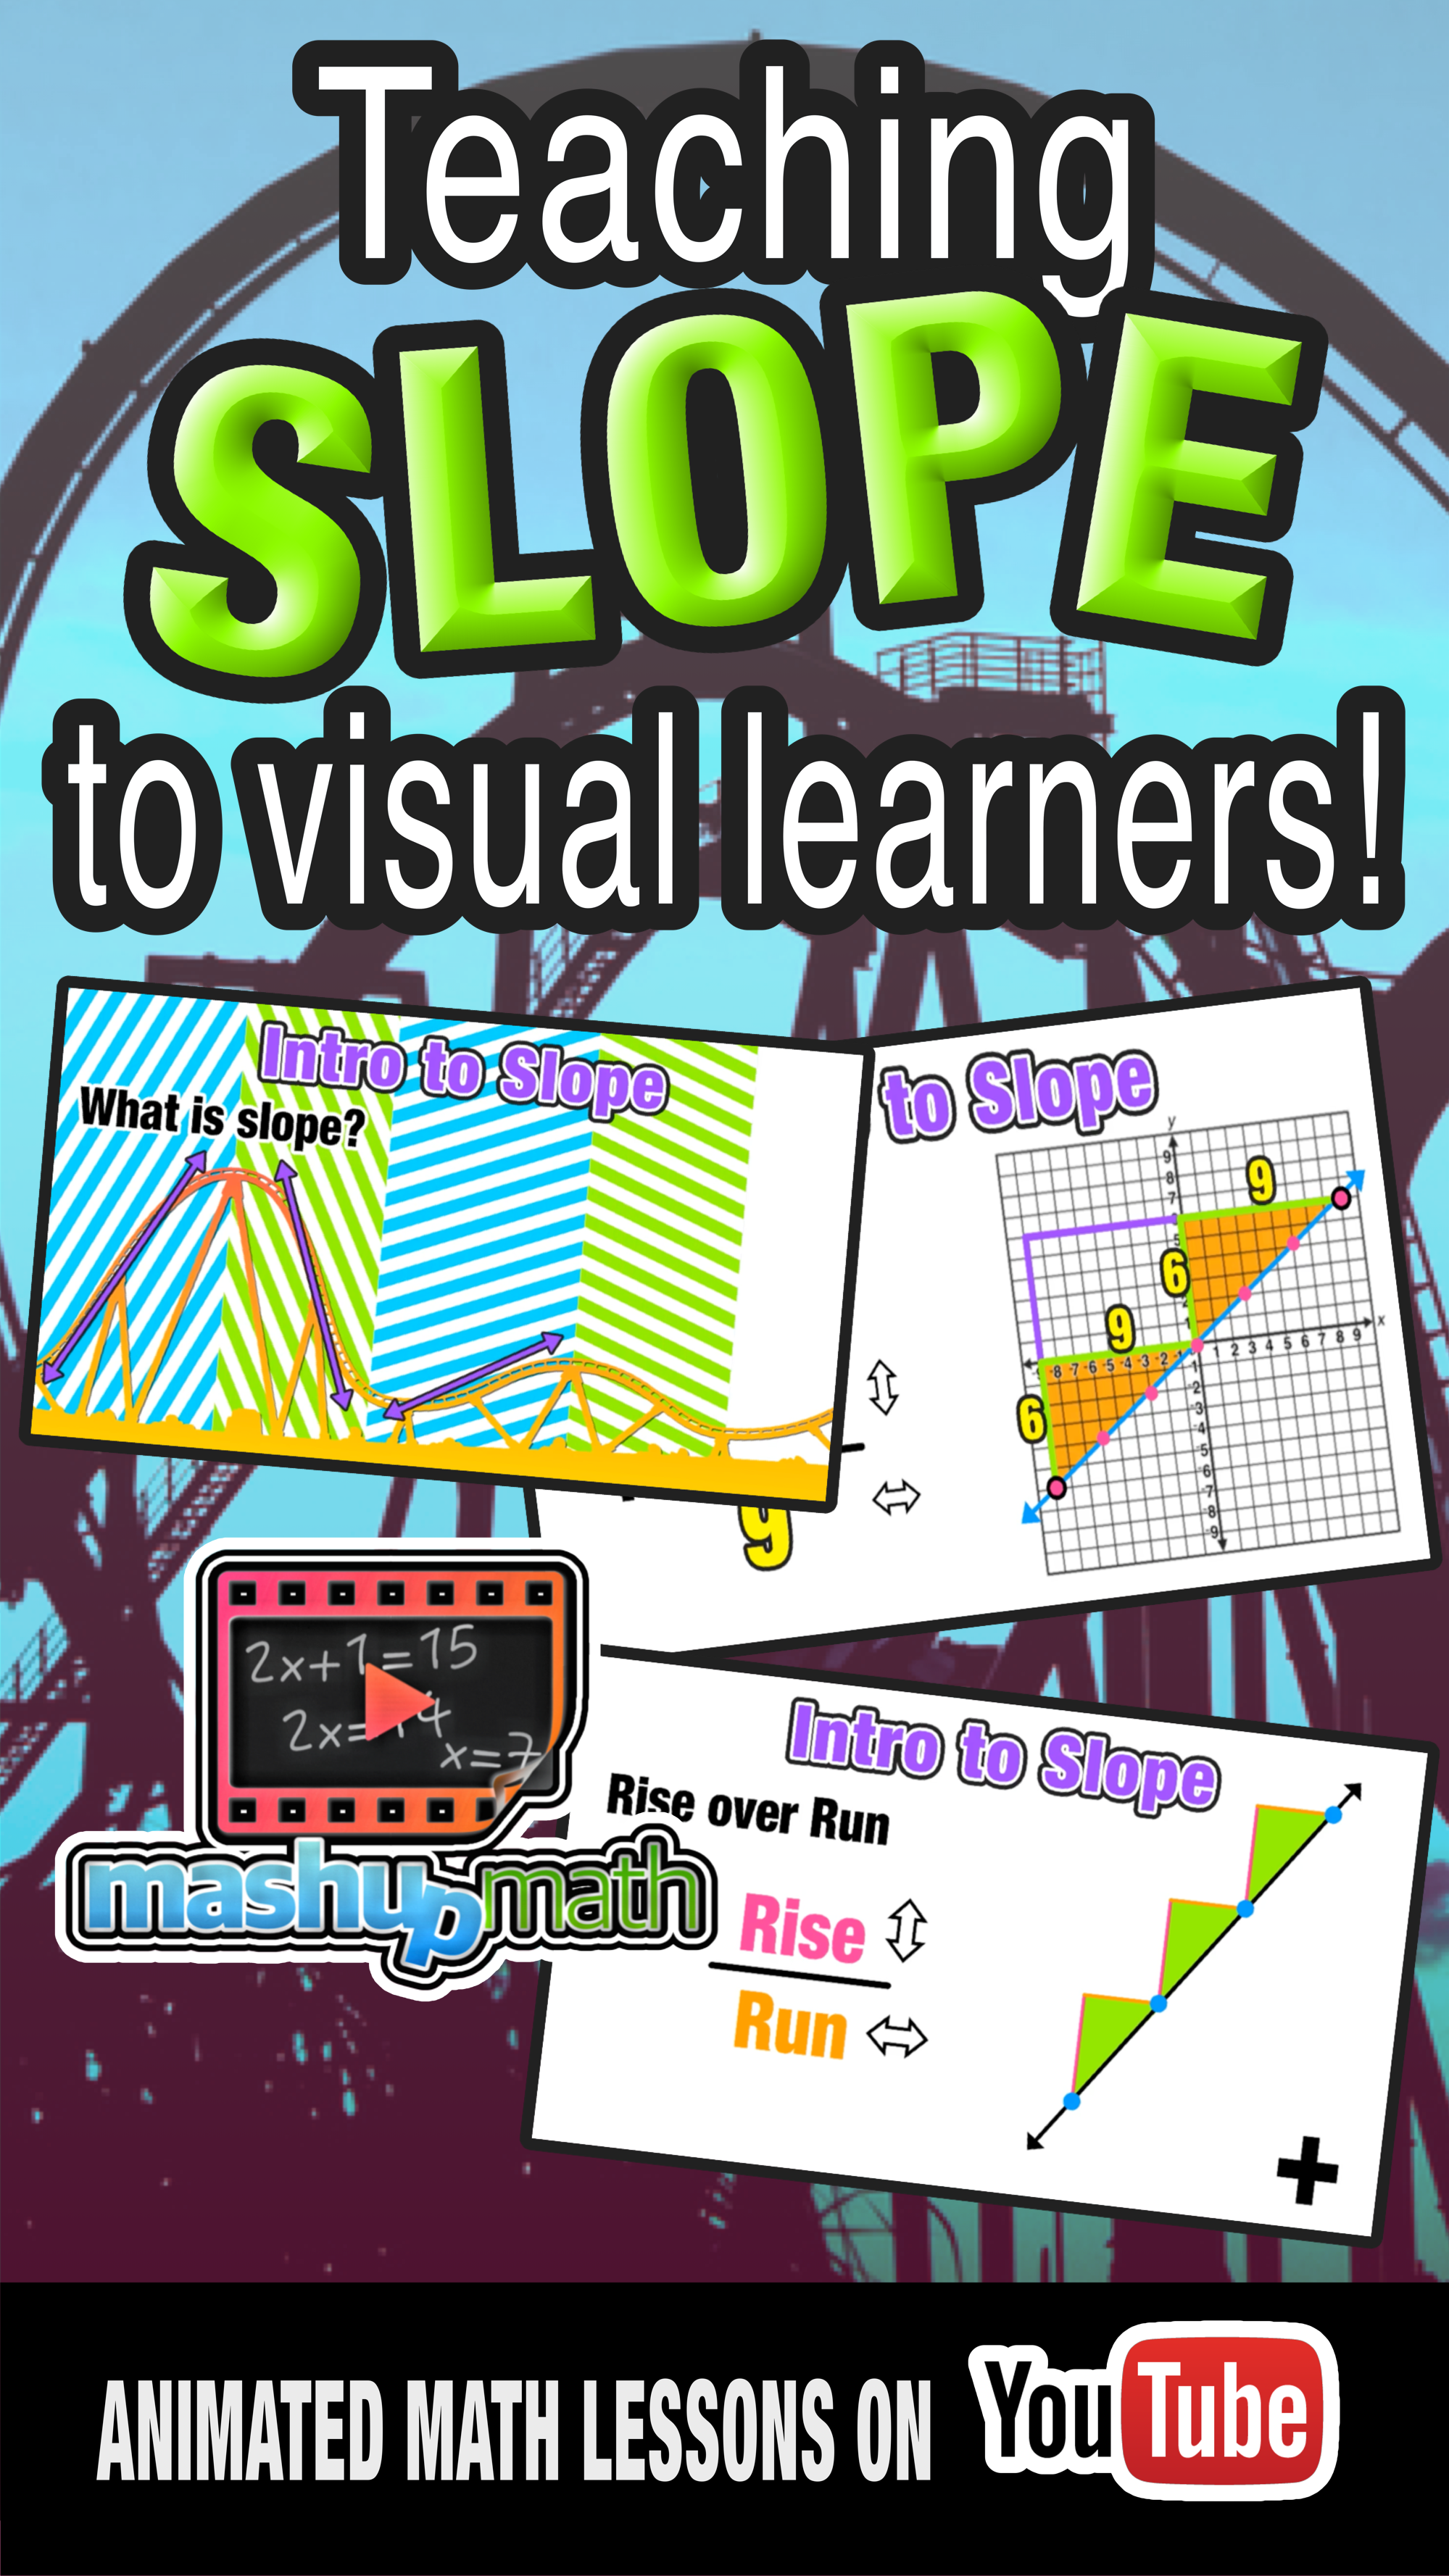 Check Out Our Flipped Classroom Animated Math Lesson On